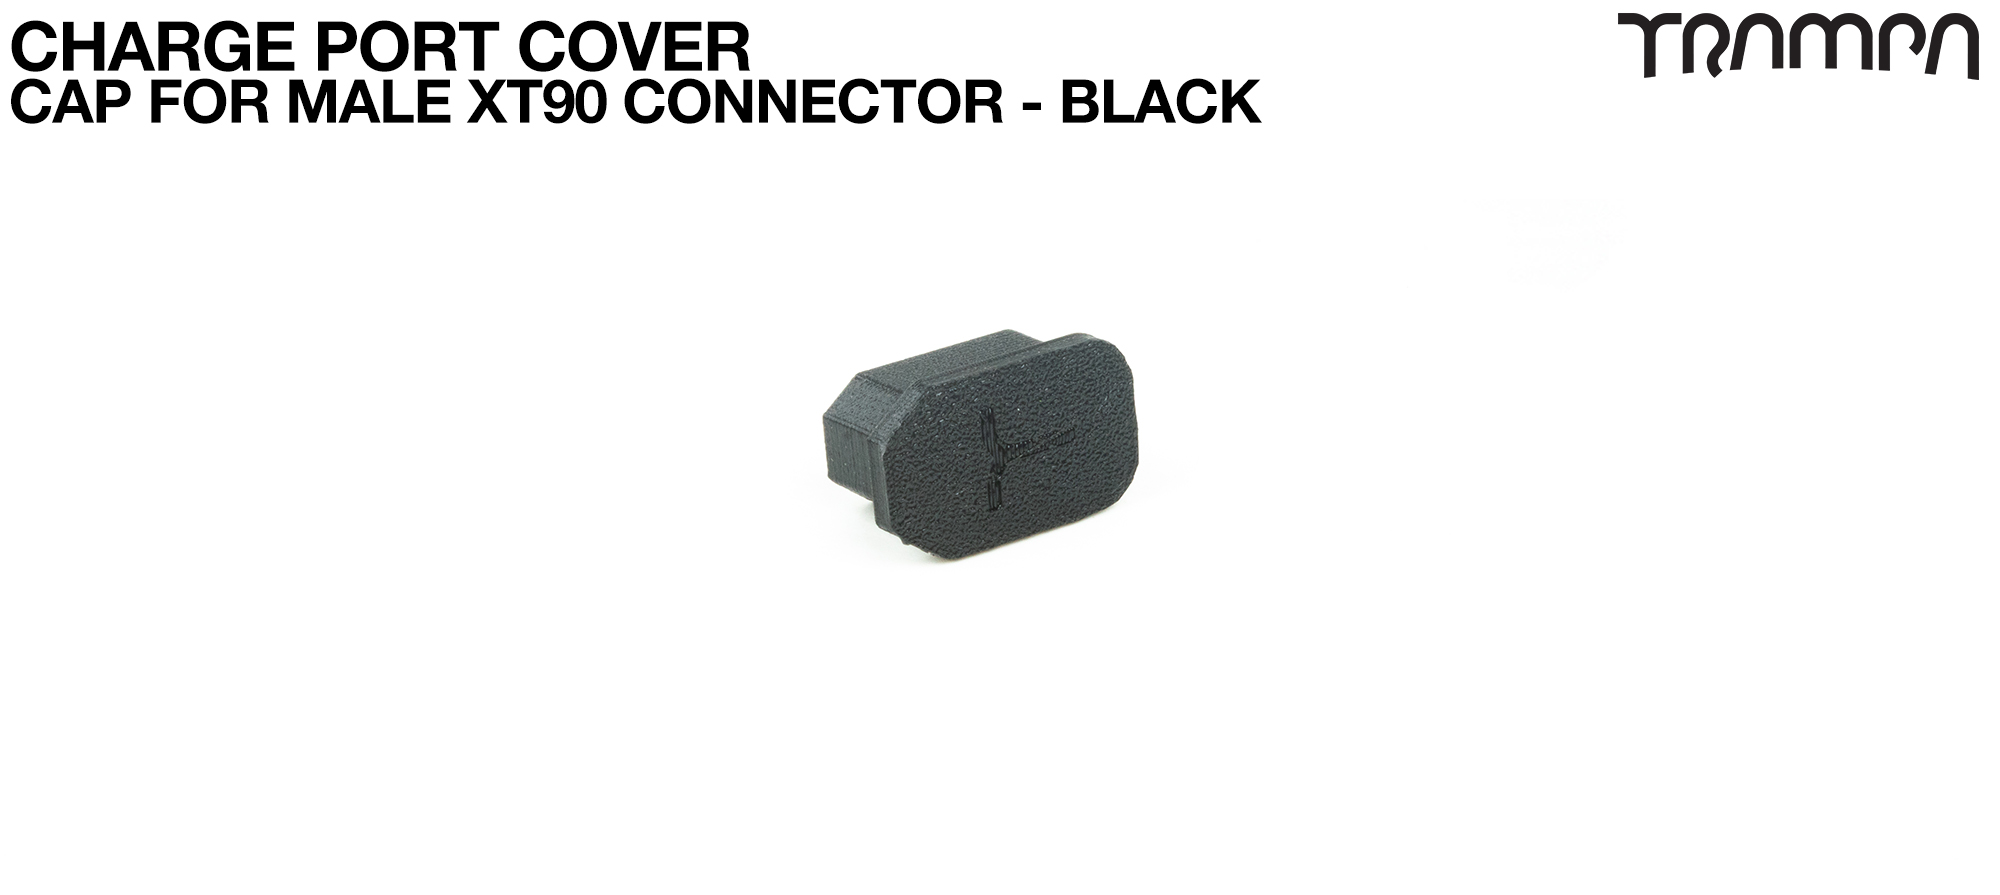 I'd like a BLACK XT90 Charge Port Cover